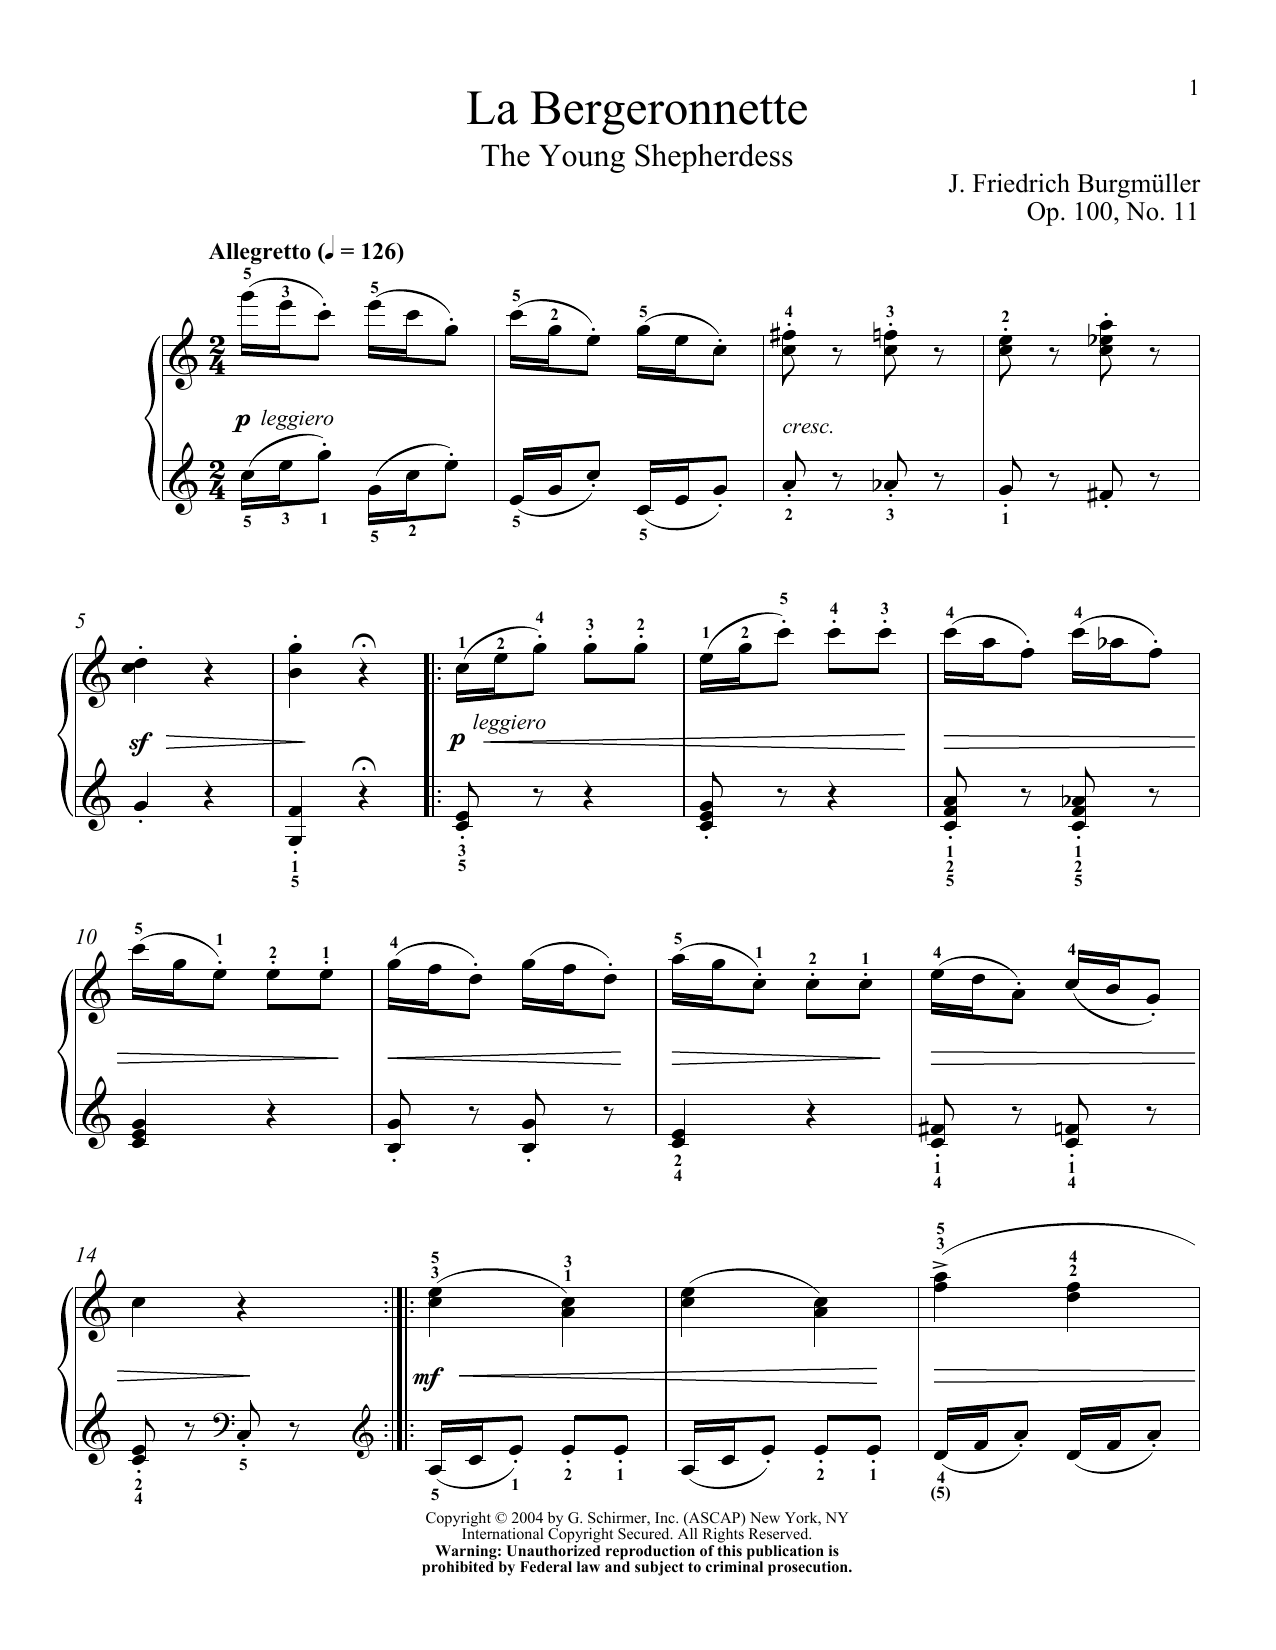 The Wagtail (La Bergeronnette), Op. 100, No. 11 (Piano Solo)